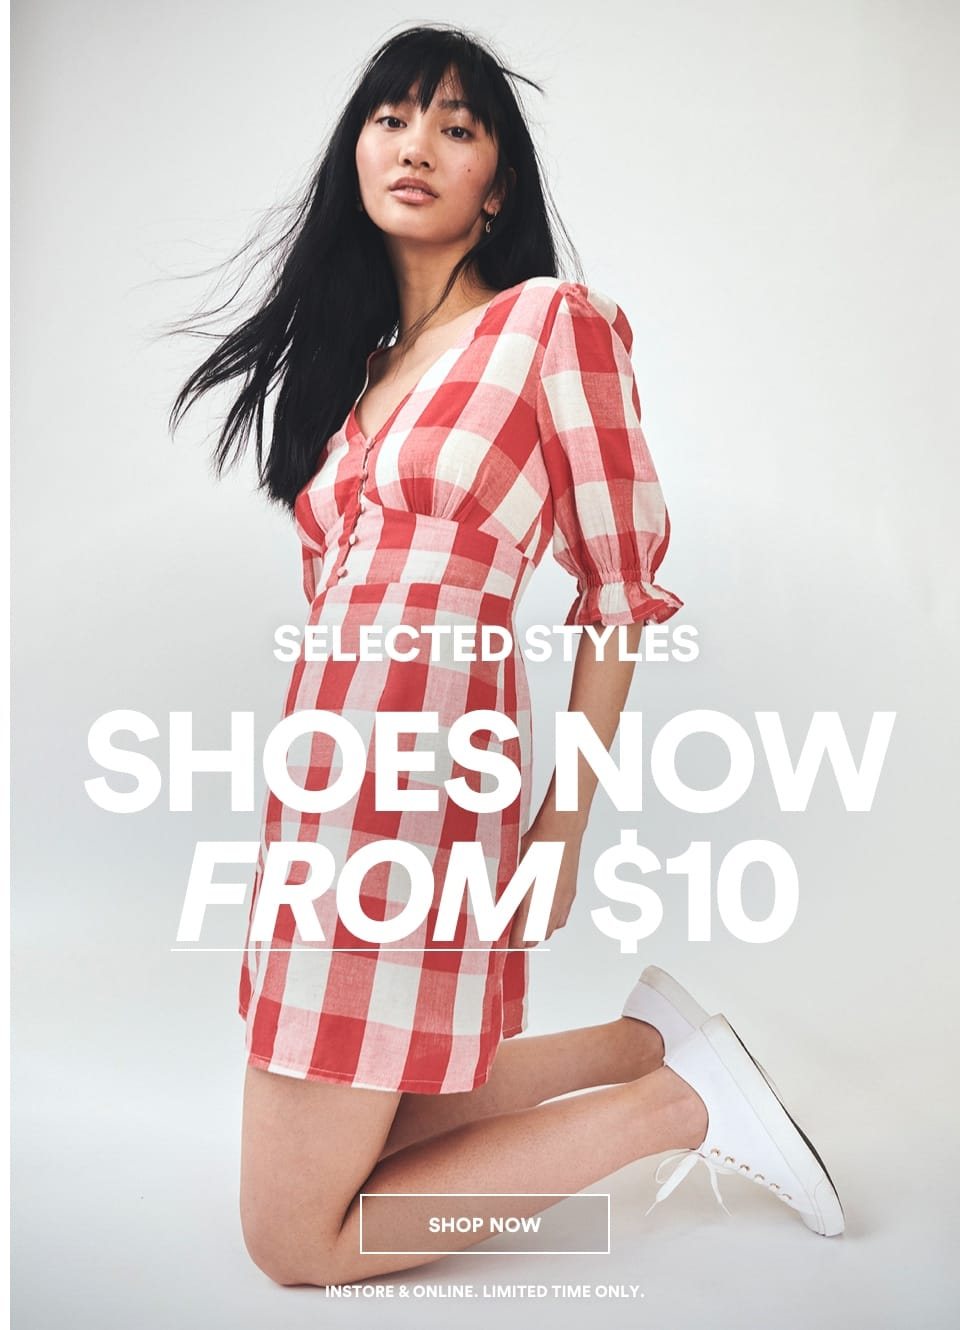 Shoes Now From $10. Click to shop.